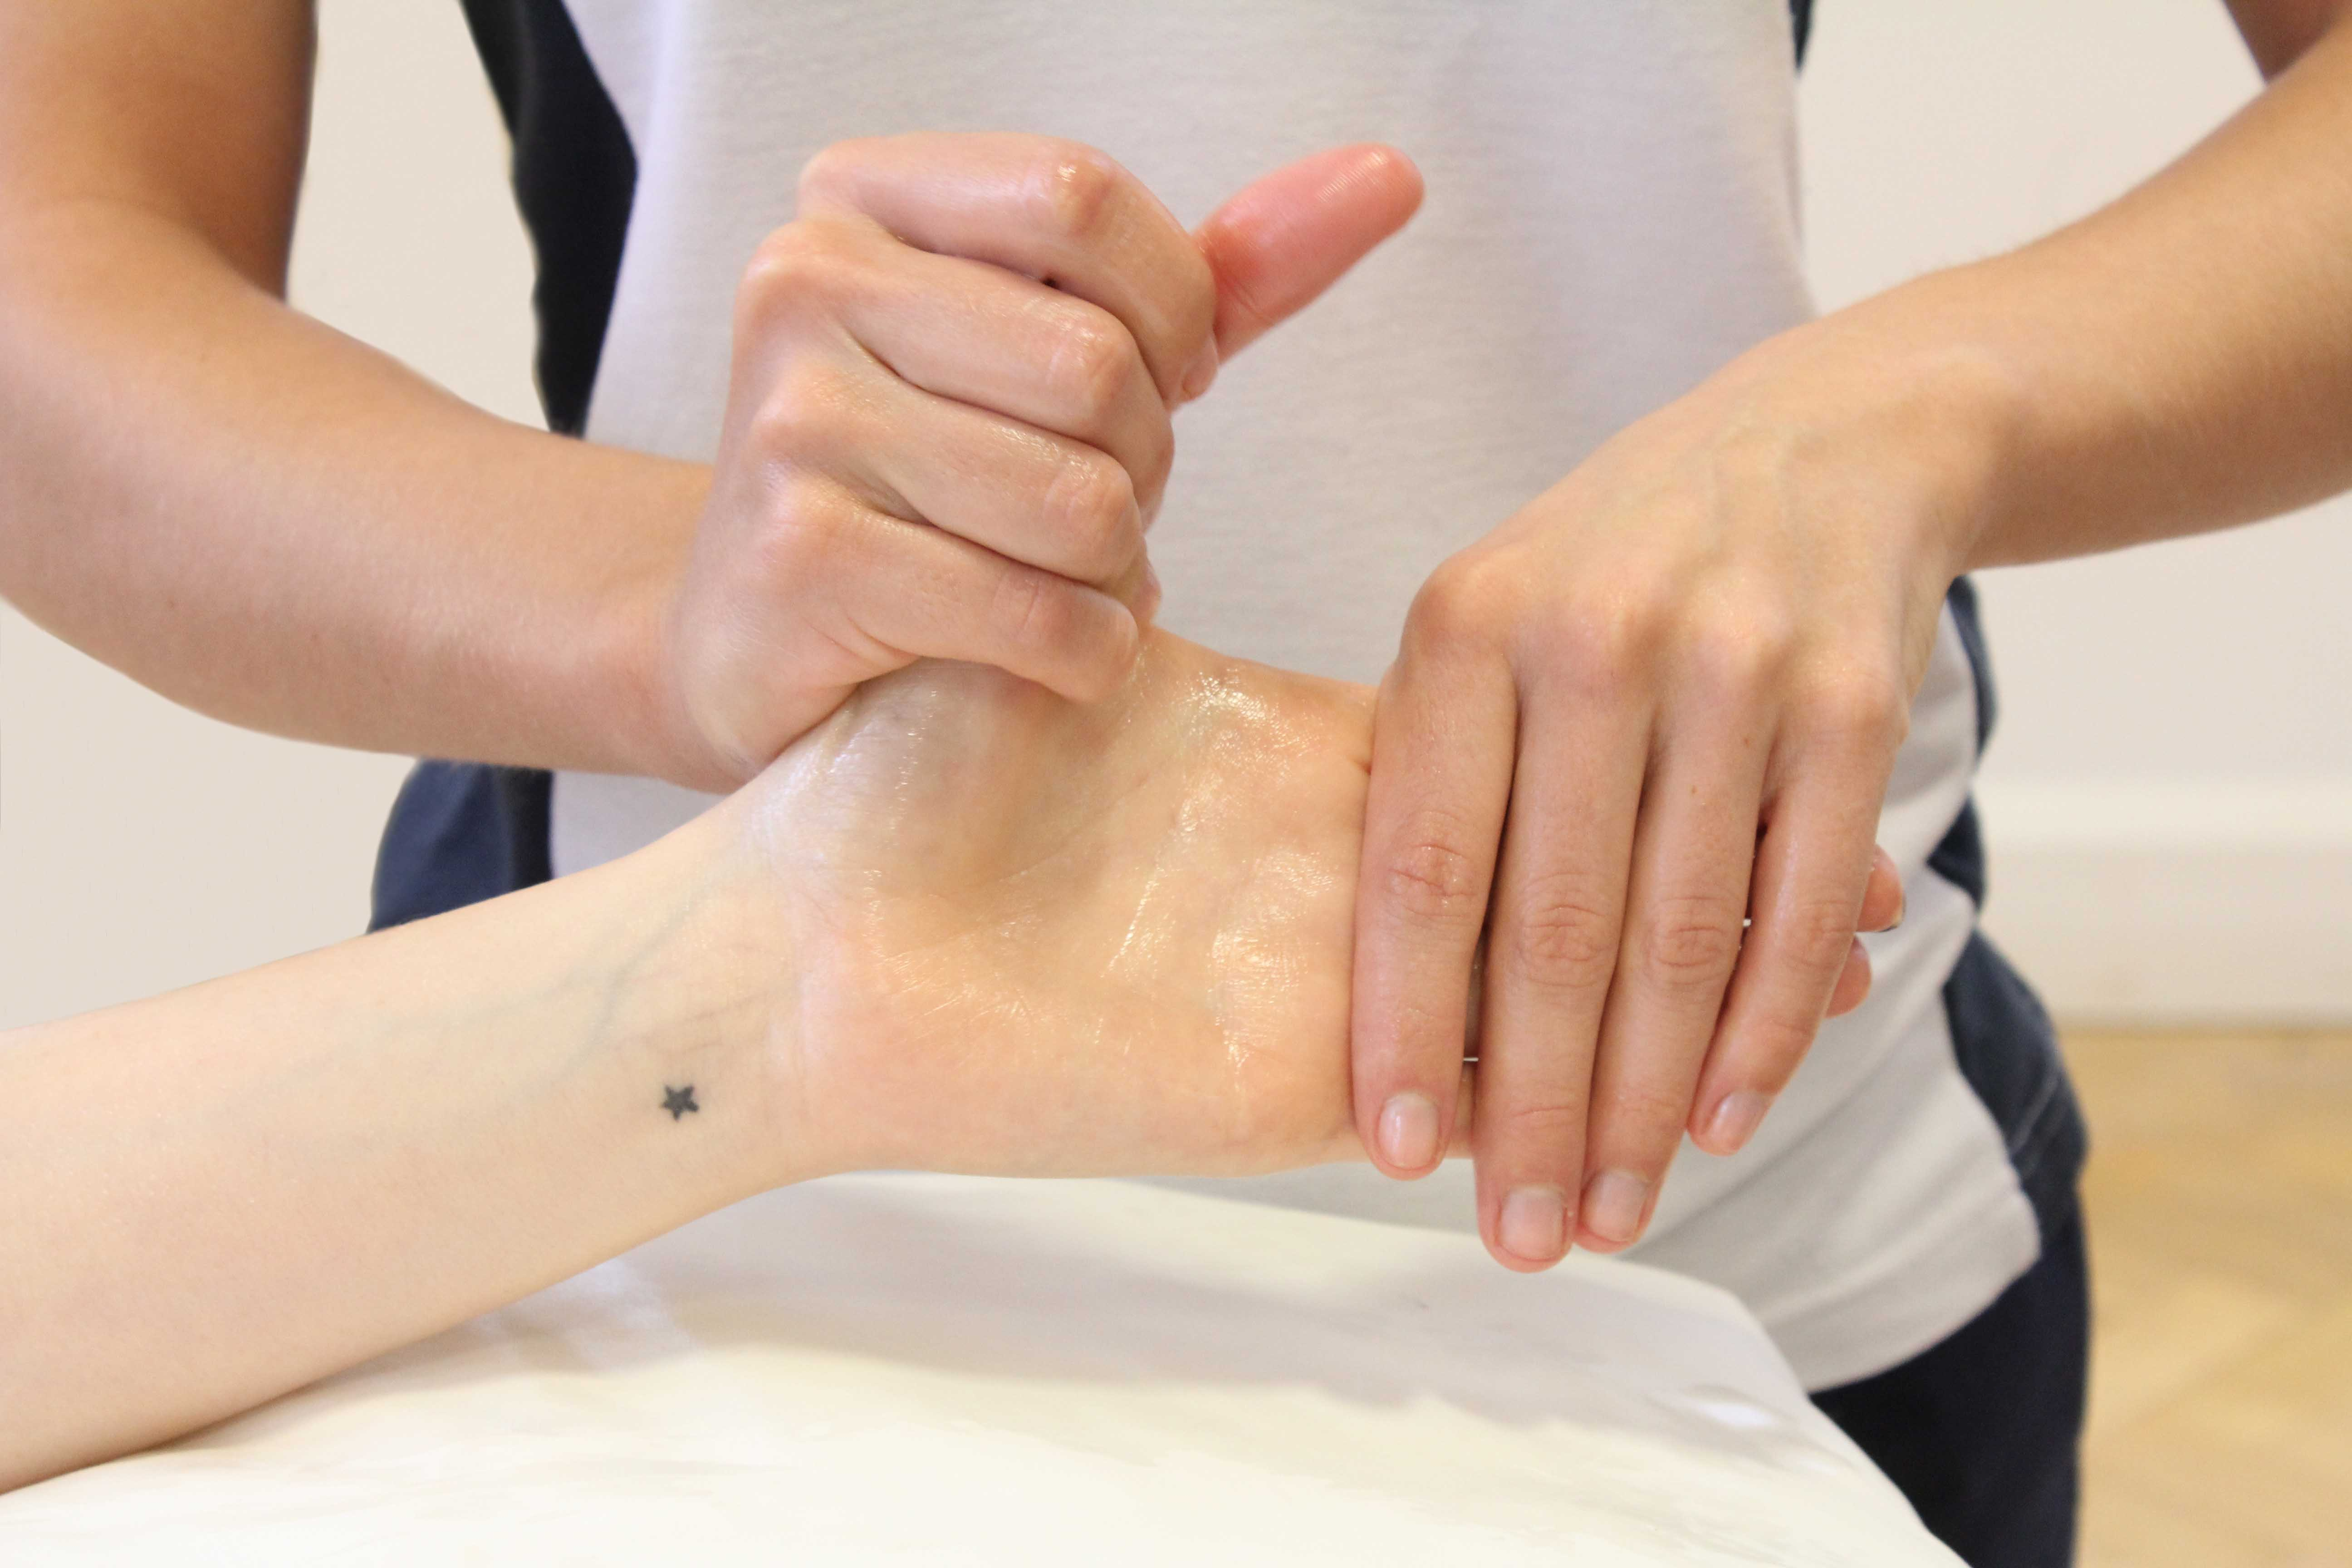 Soft tissue massage and stretches applied to the thumb and fingers